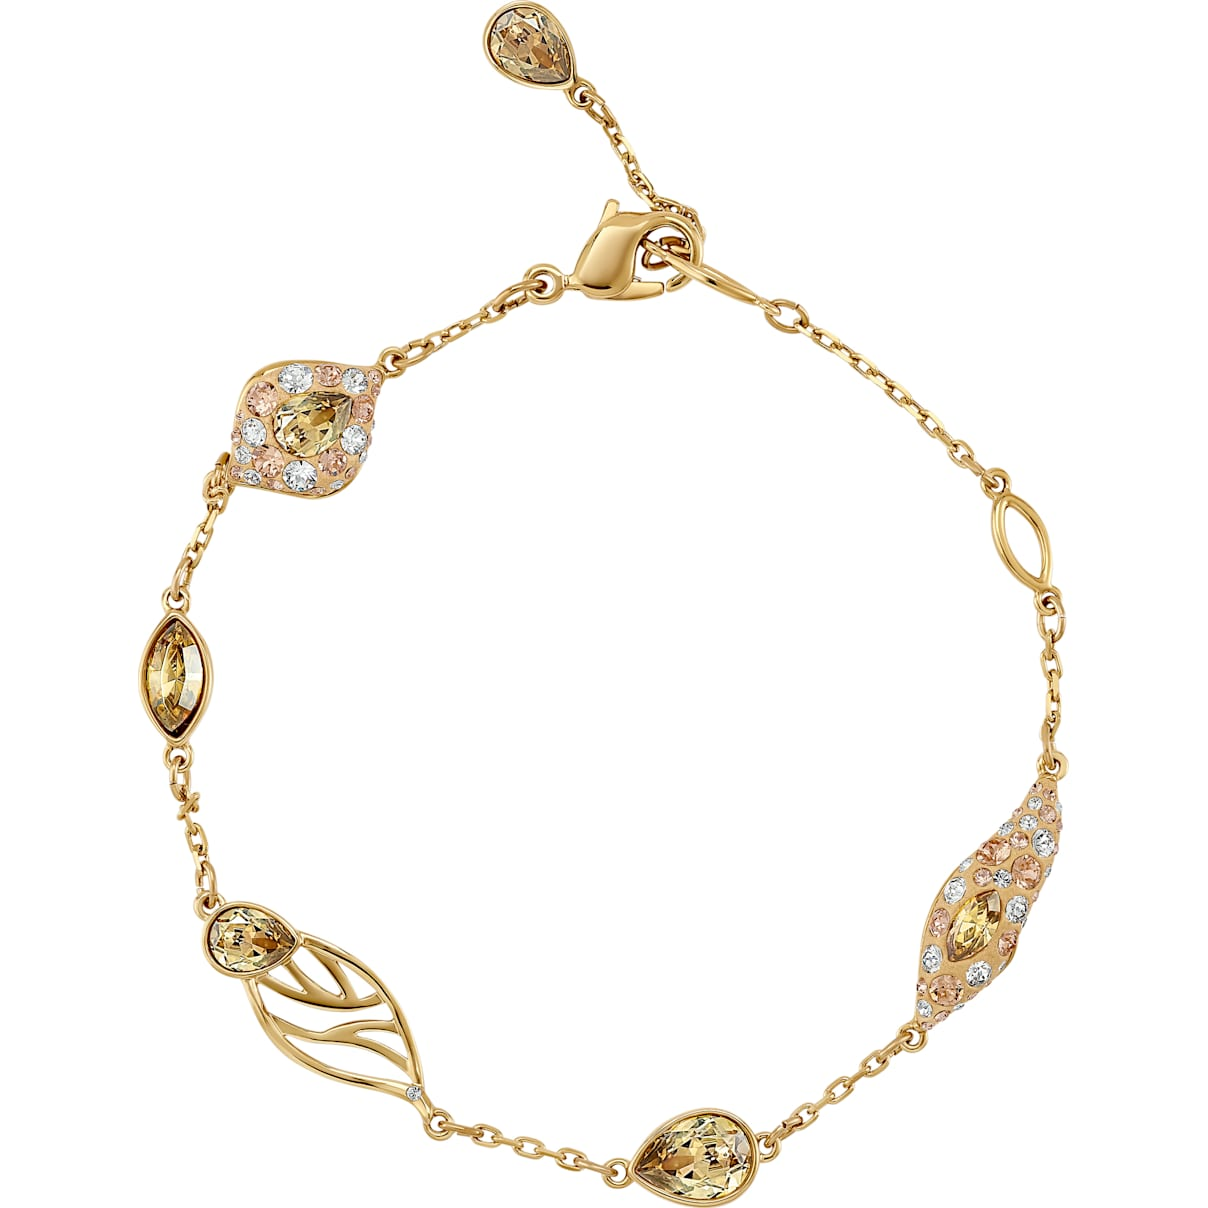 Swarovski Graceful Bloom Decorative Bracelet, Brown, Gold-tone plated